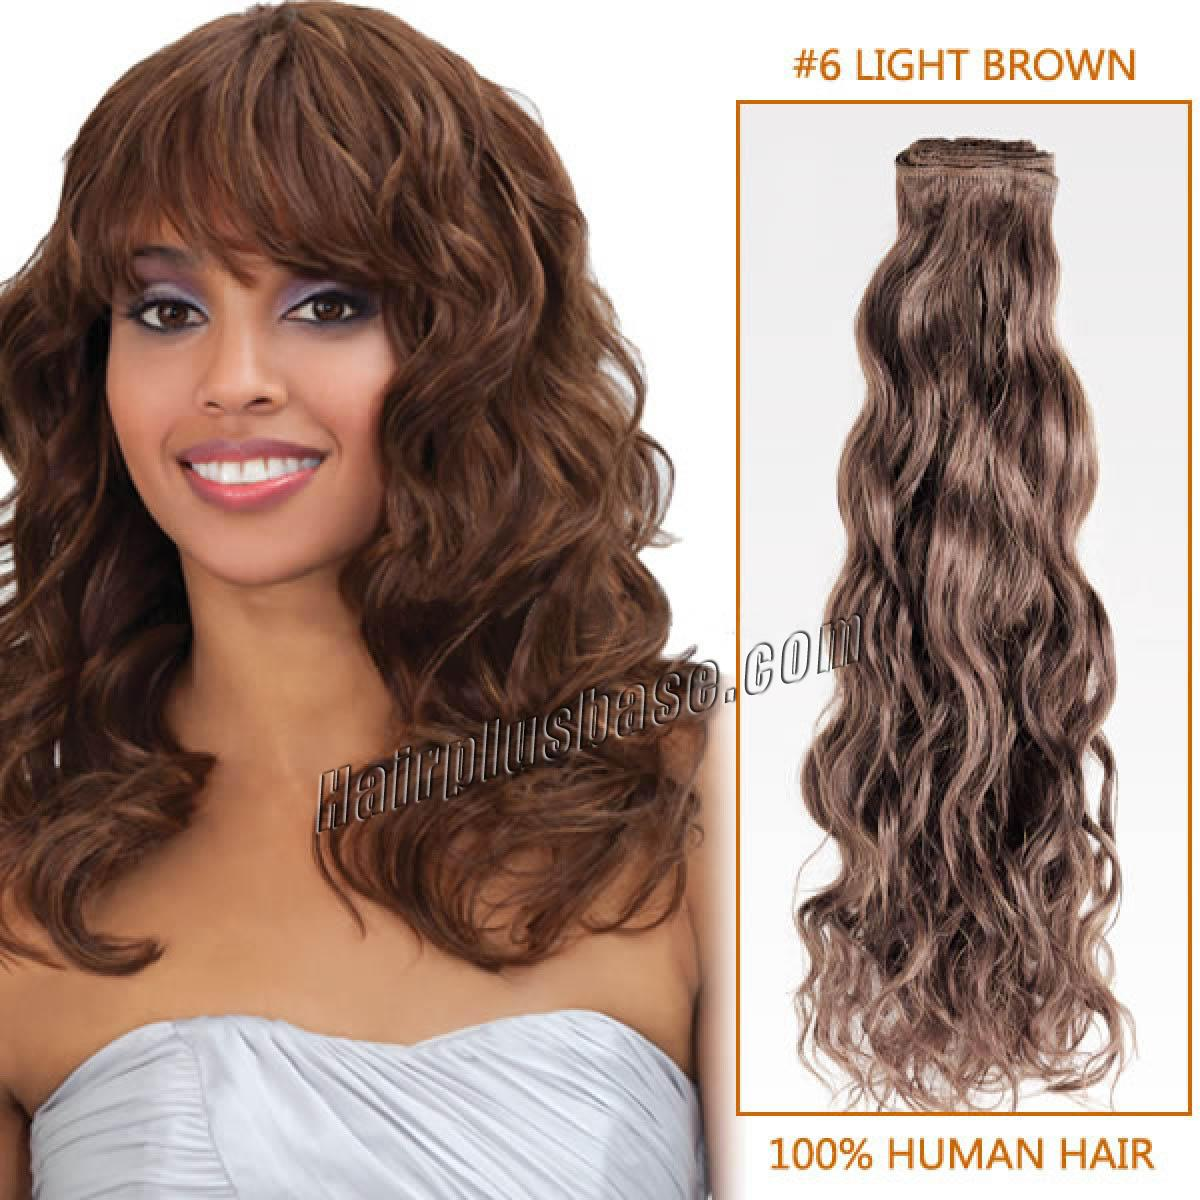 Inch 6 light brown curly indian remy hair wefts 10 inch 6 light brown curly indian remy hair wefts pmusecretfo Choice Image